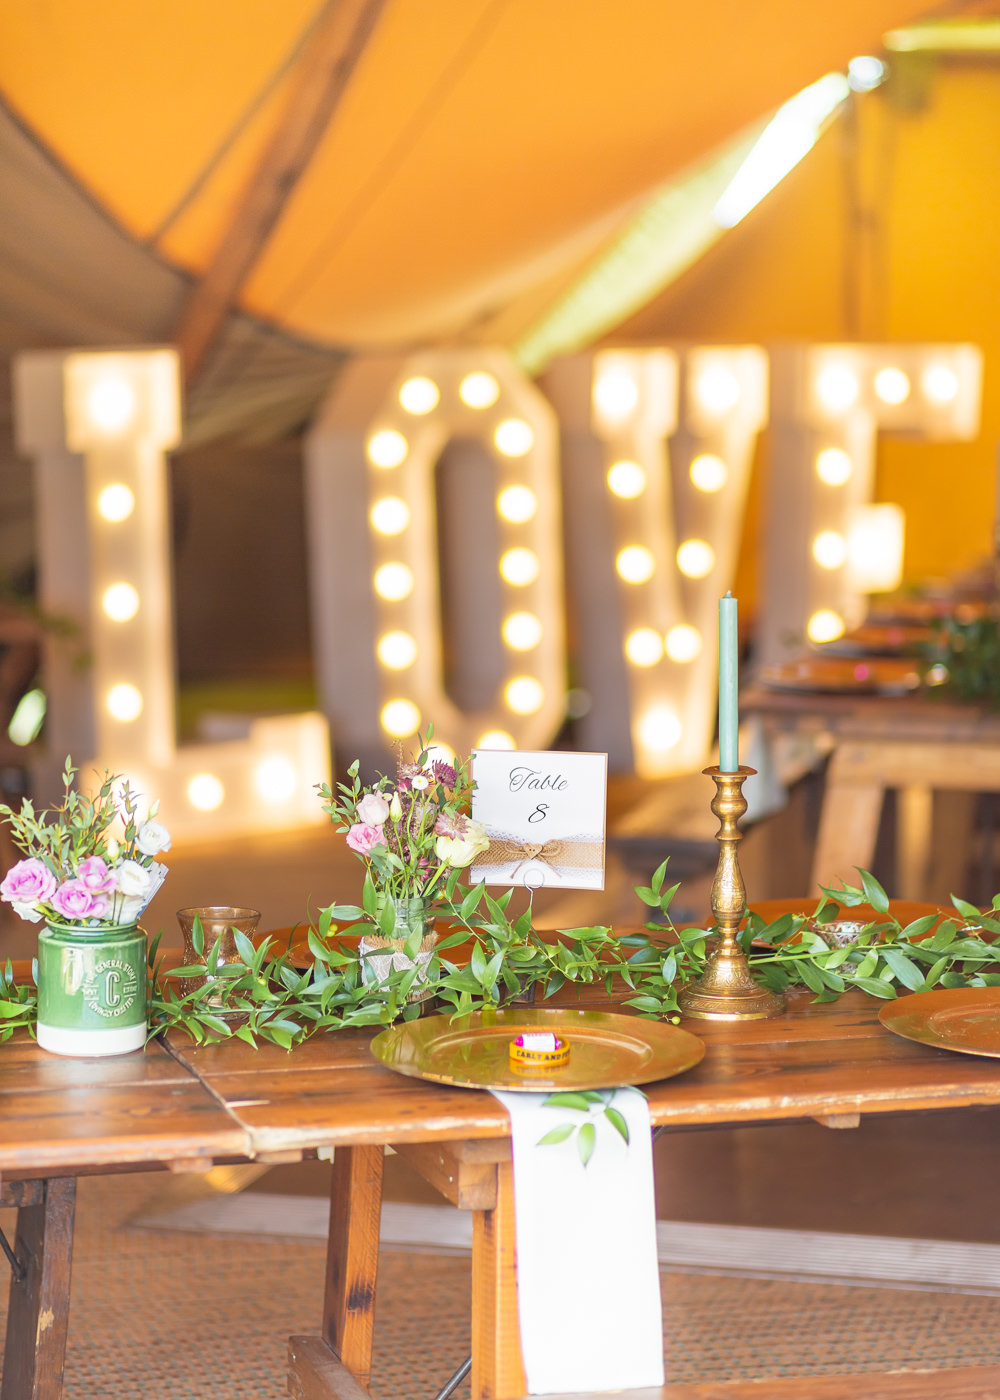 Greenery Foliage Garden Pink Flowers Love Light Letters Bedfordshire Tipi Wedding Natalie Stevenson Photography